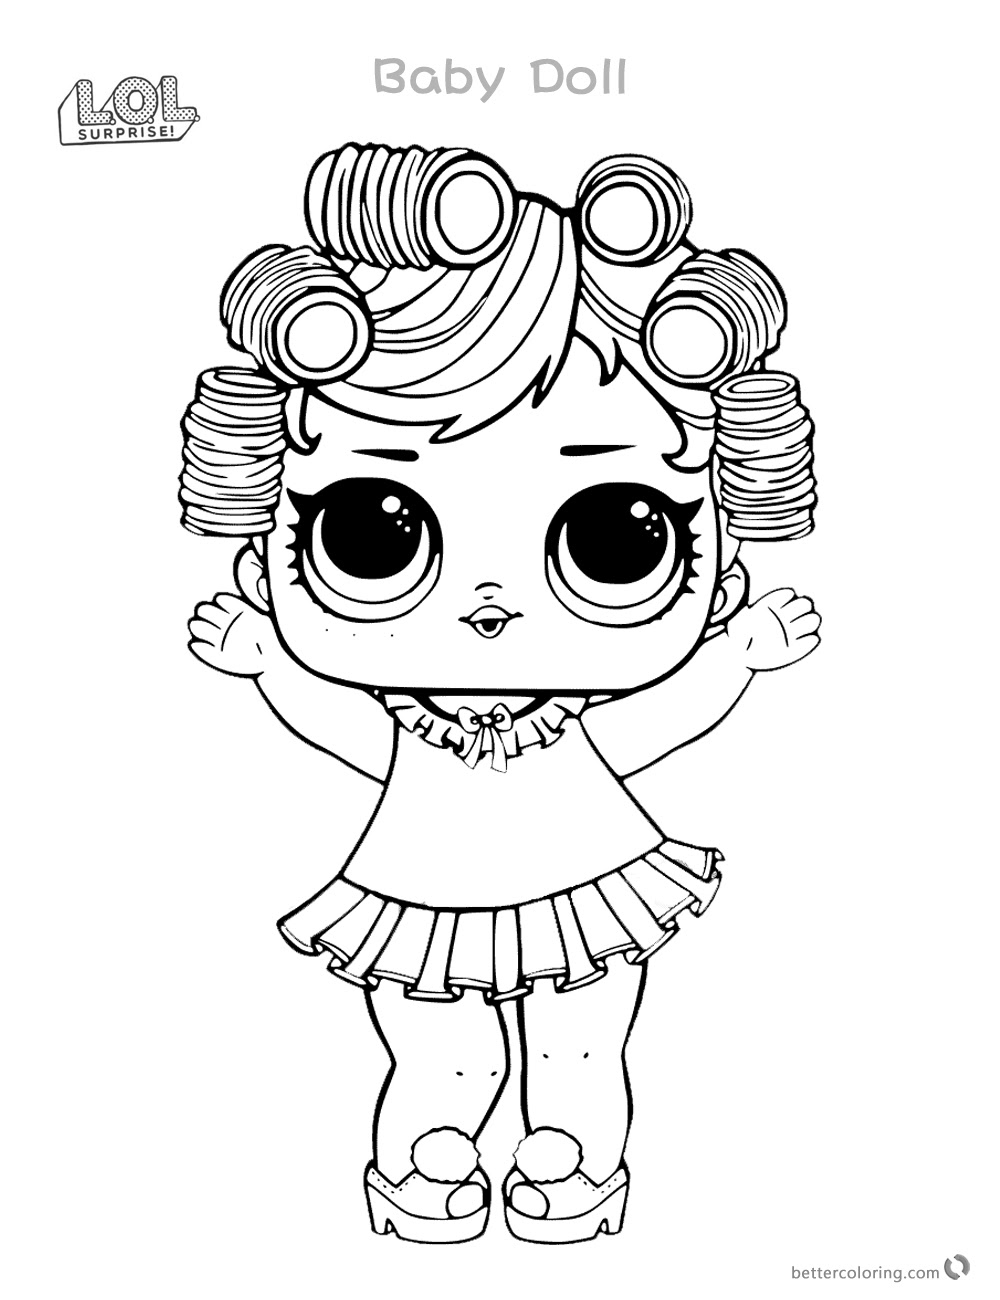 V.R.Q.T. Coloring Page Lotta LOL | Disney coloring pages, Lol ... | 1300x1000